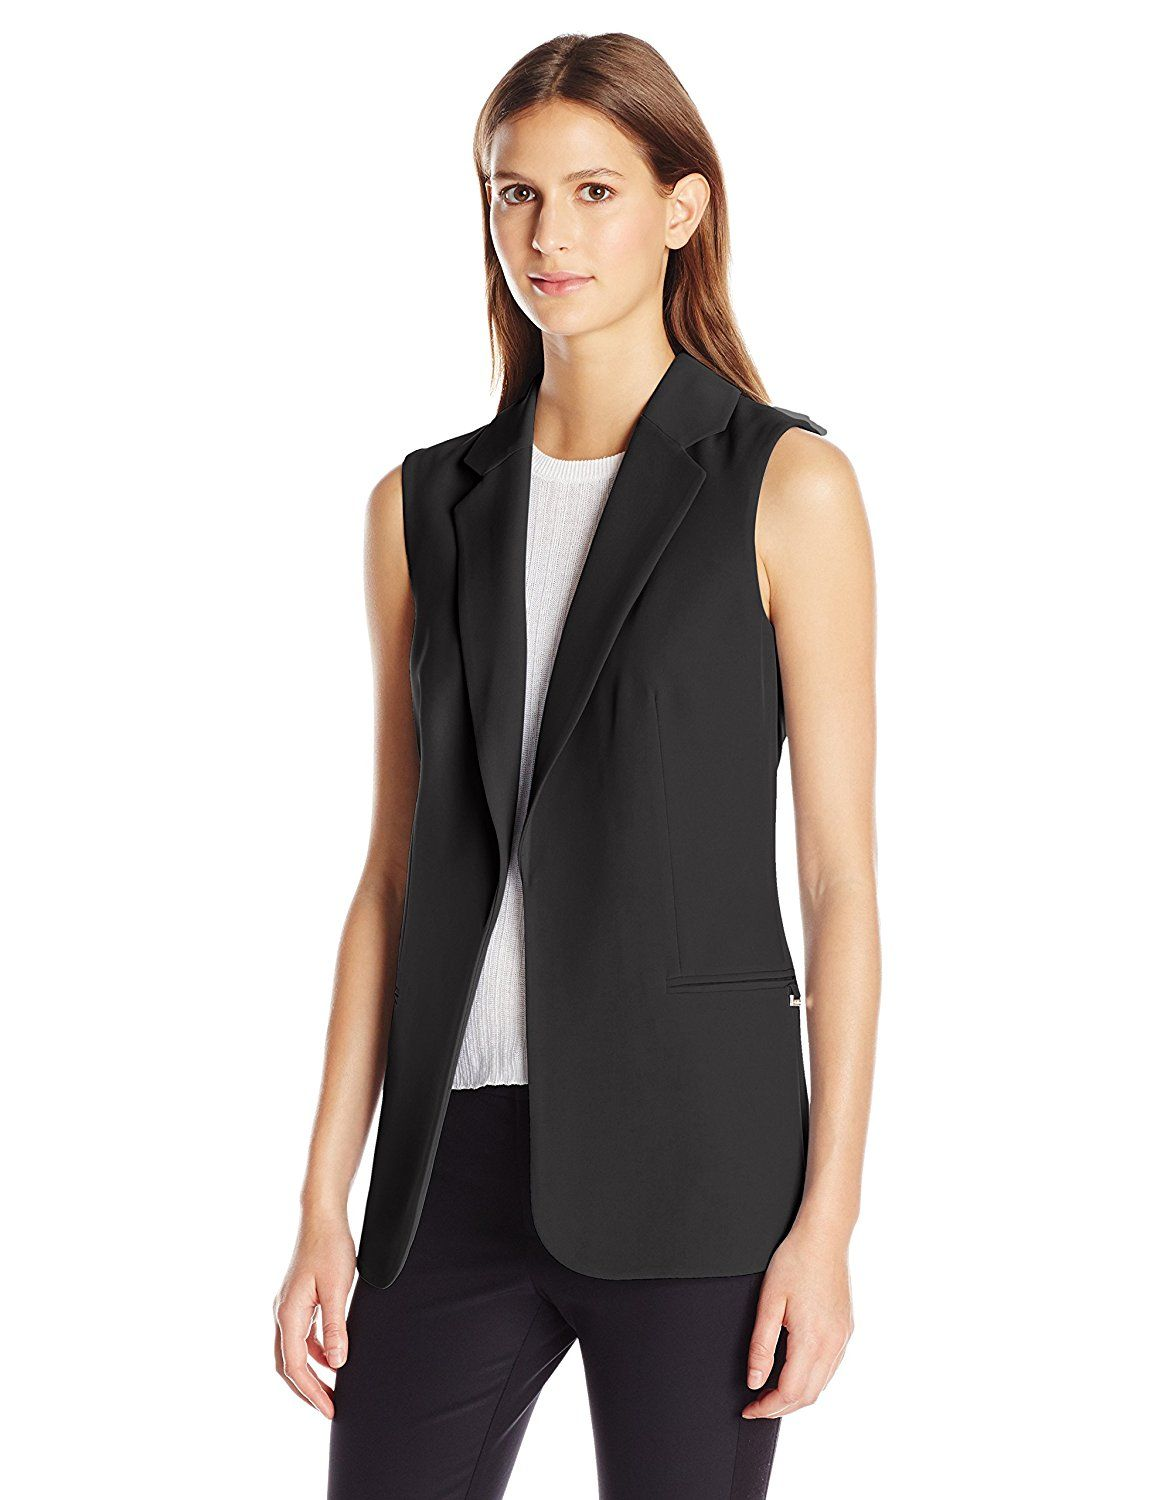 b8c6607ae5f4 Calvin Klein Women's Soft Suiting Vest at Amazon Women's Clothing store: